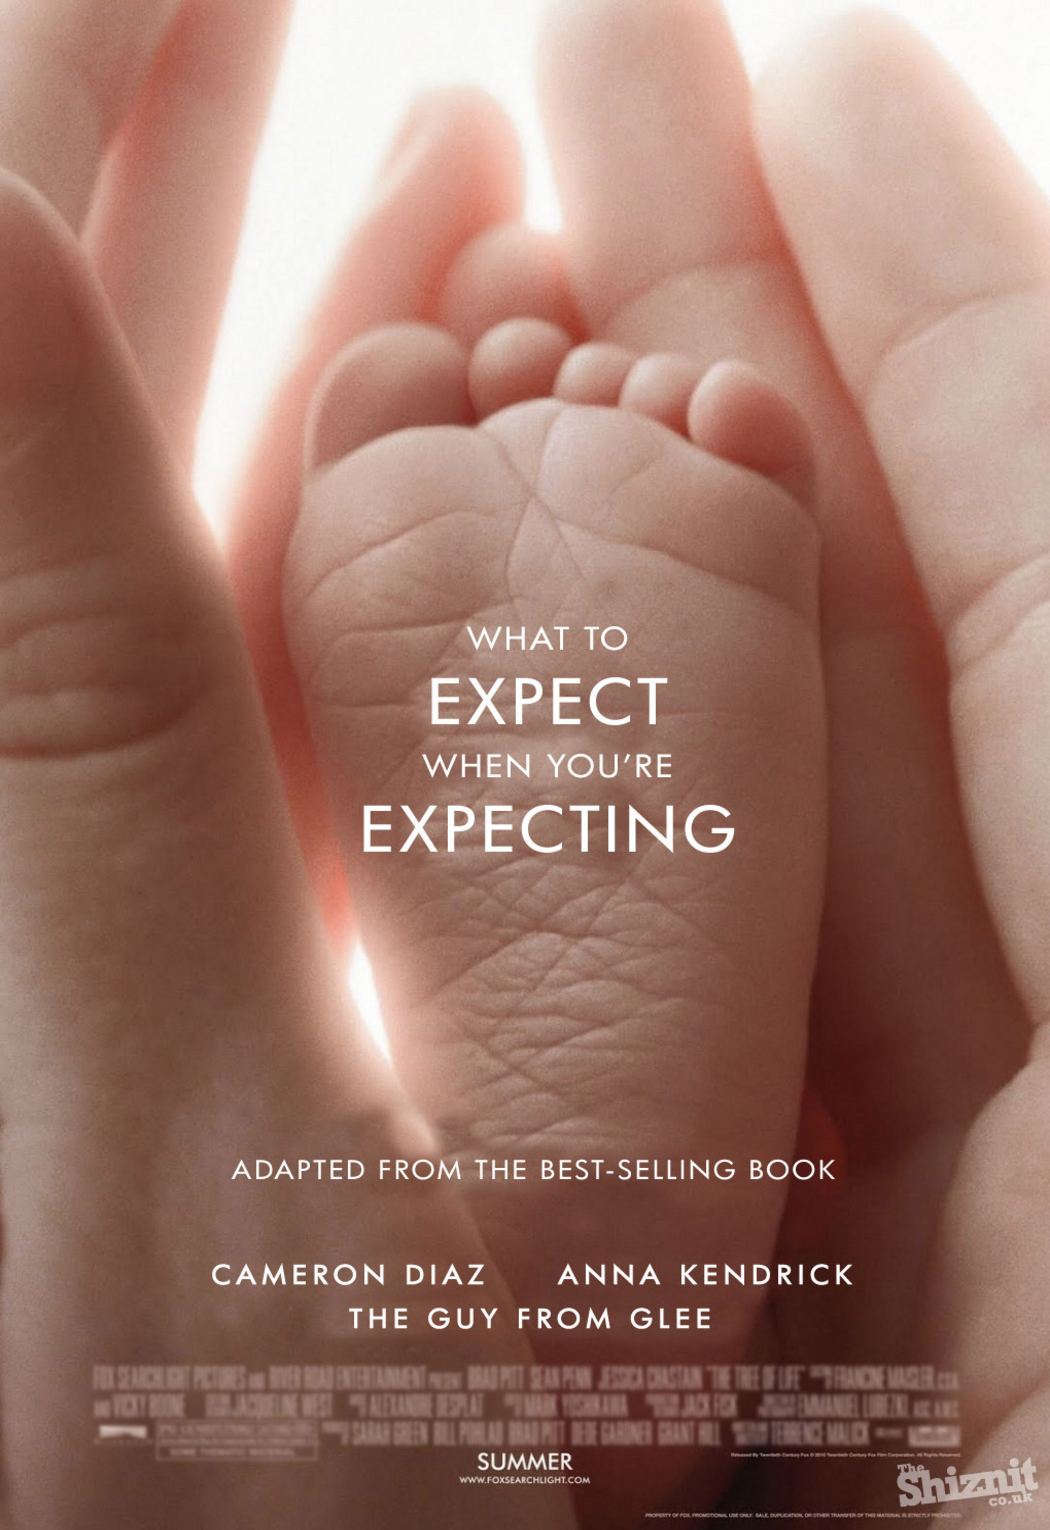 What to Expect When You're Expecting - Movie Poster #6 (Original)